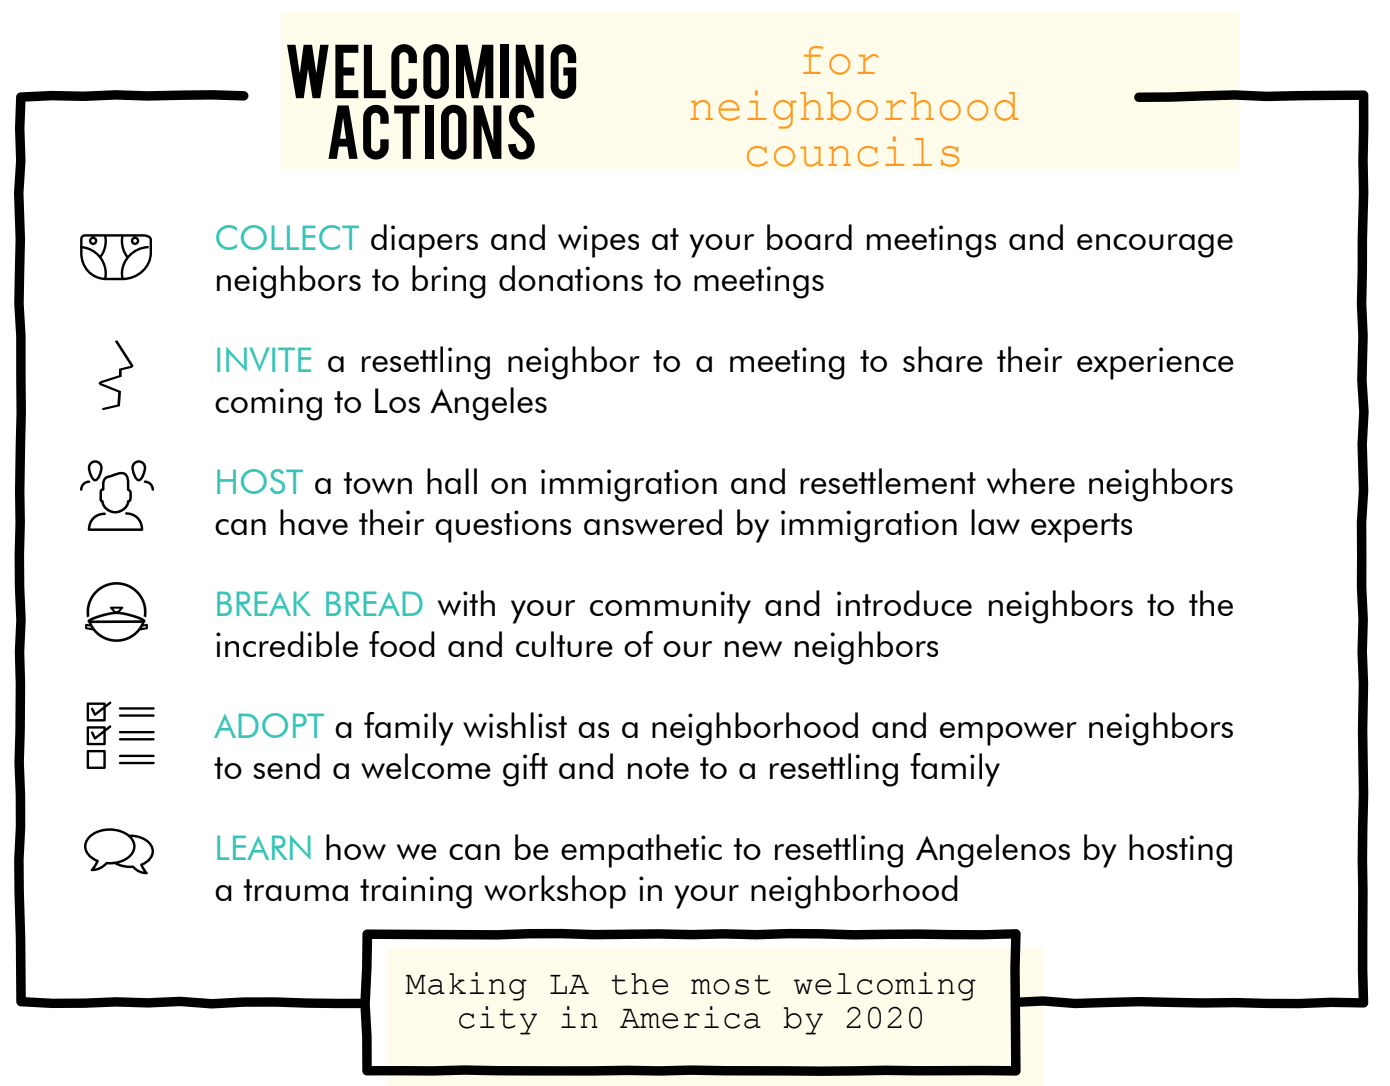 Neighborhood councils select Welcoming Actions to make tangible impact for resettling families in LA